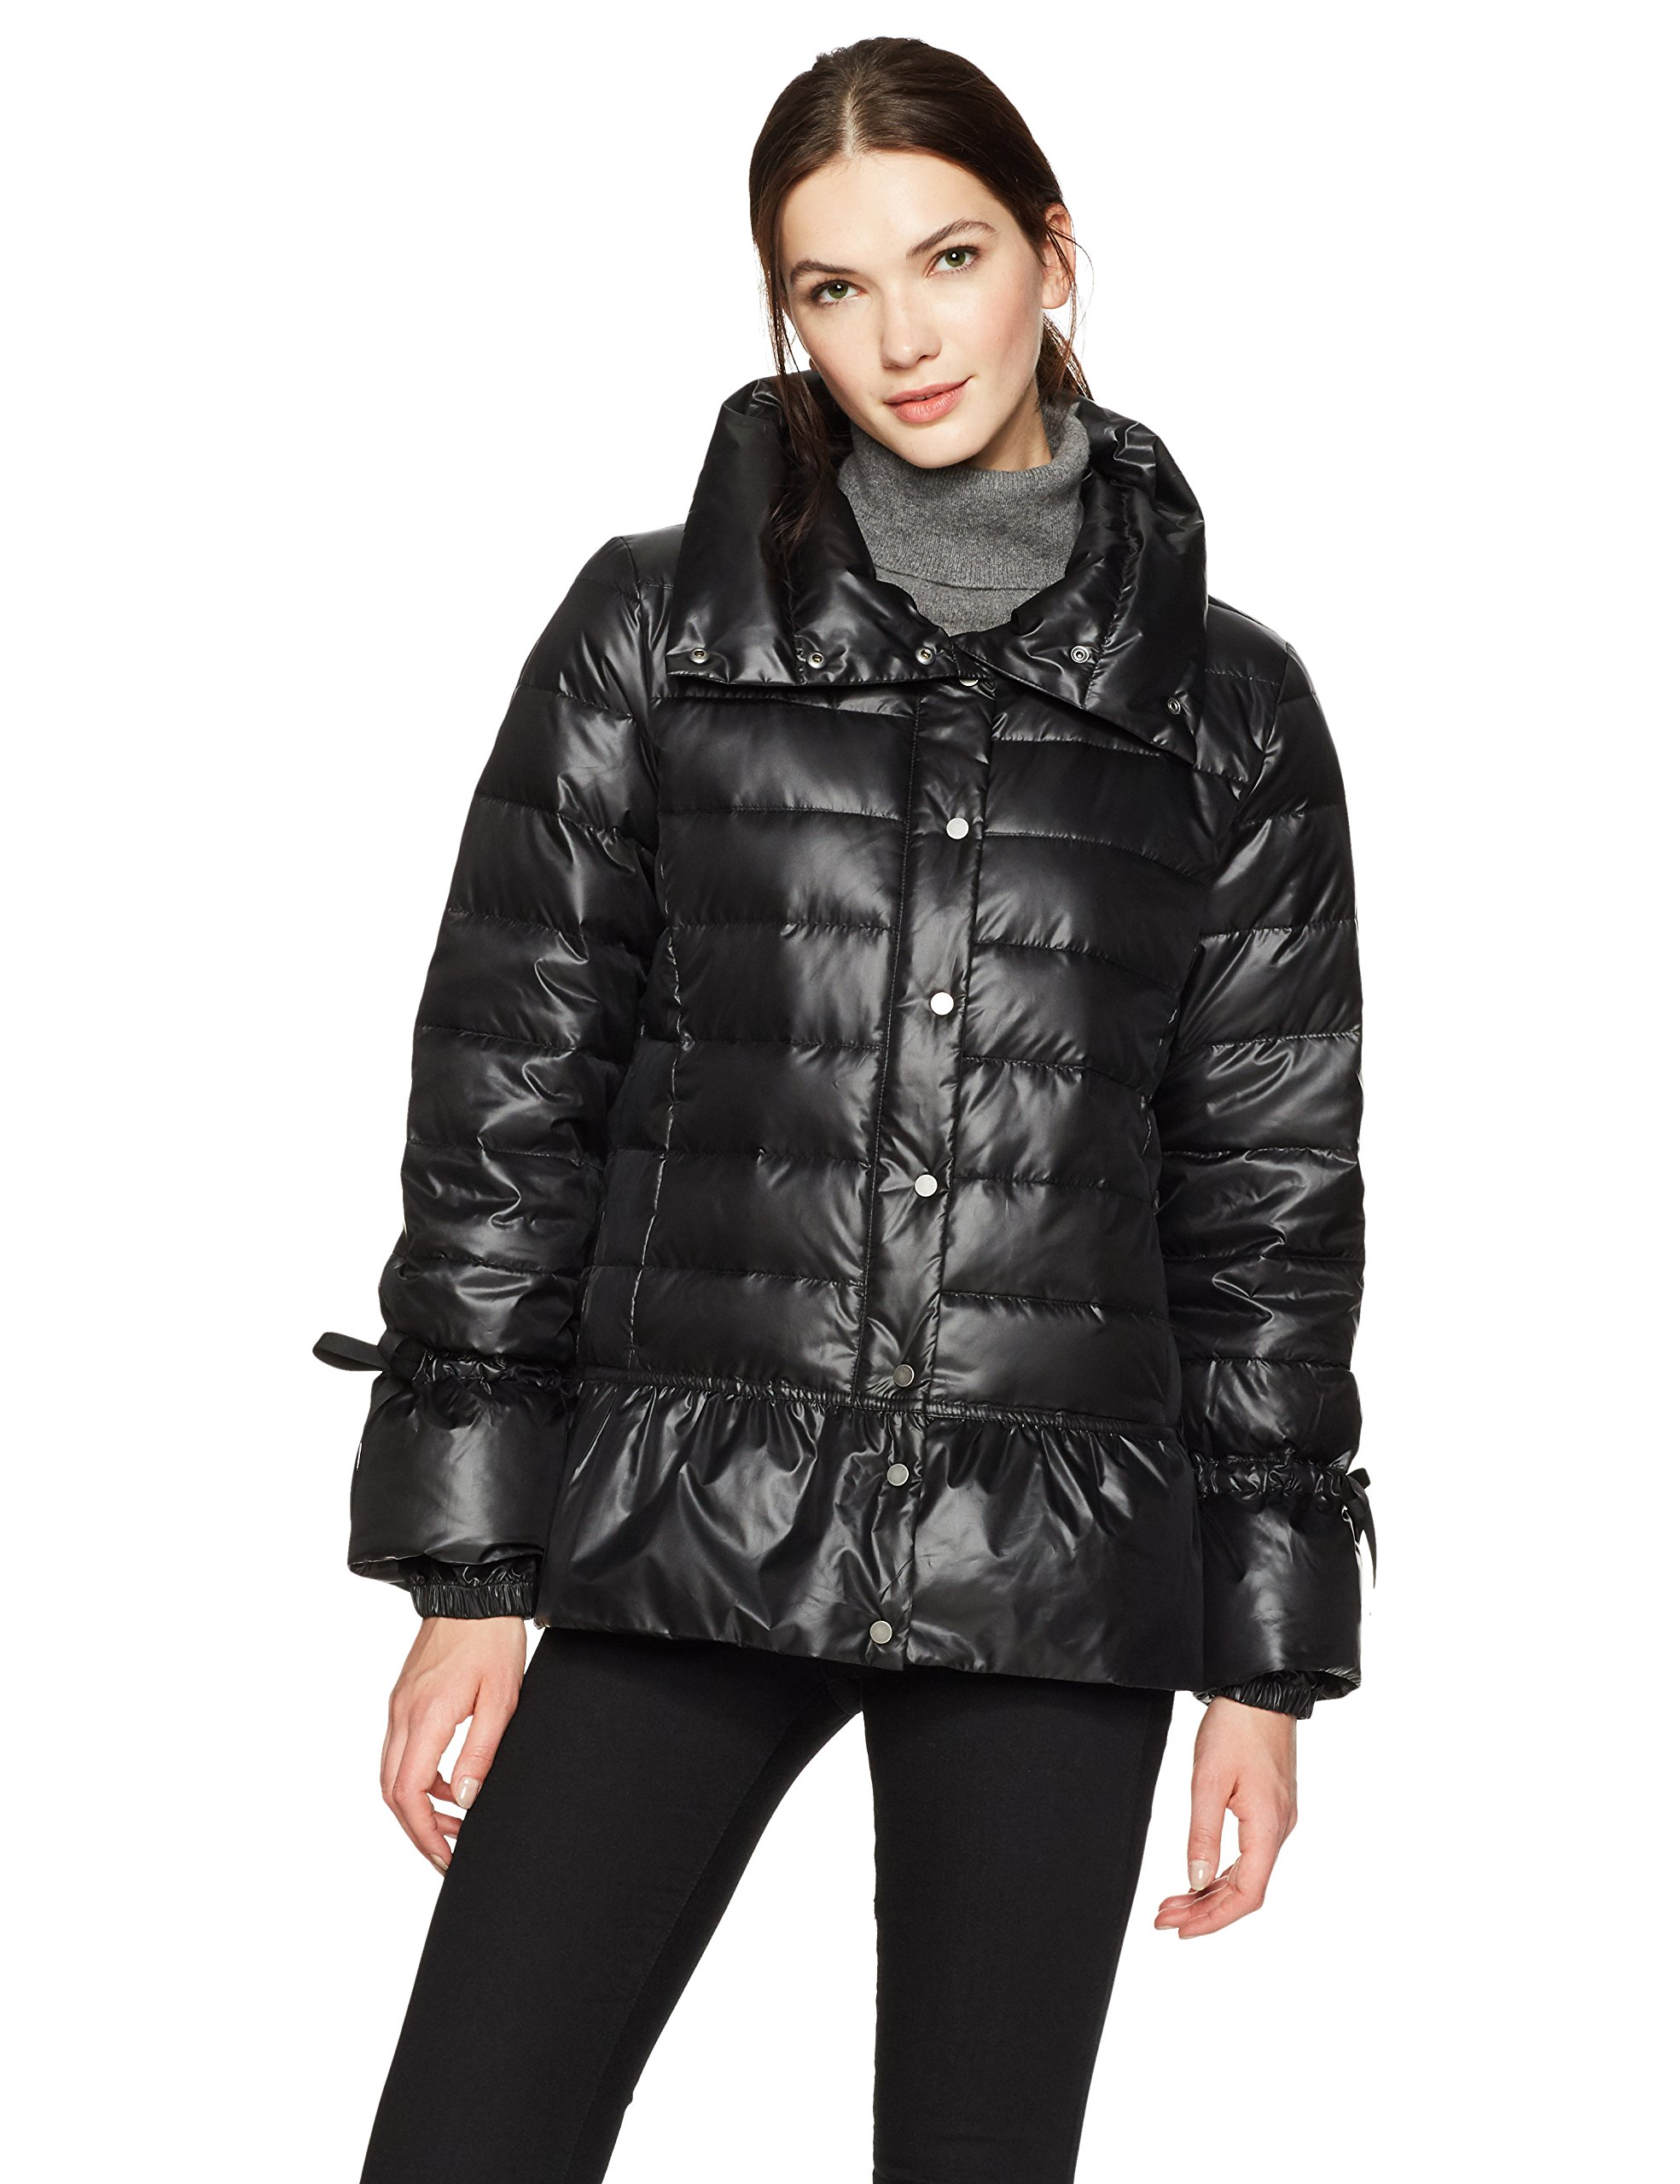 HAVEN OUTERWEAR Women's Funnel Neck Down Jacket with Peplum, Black, Small